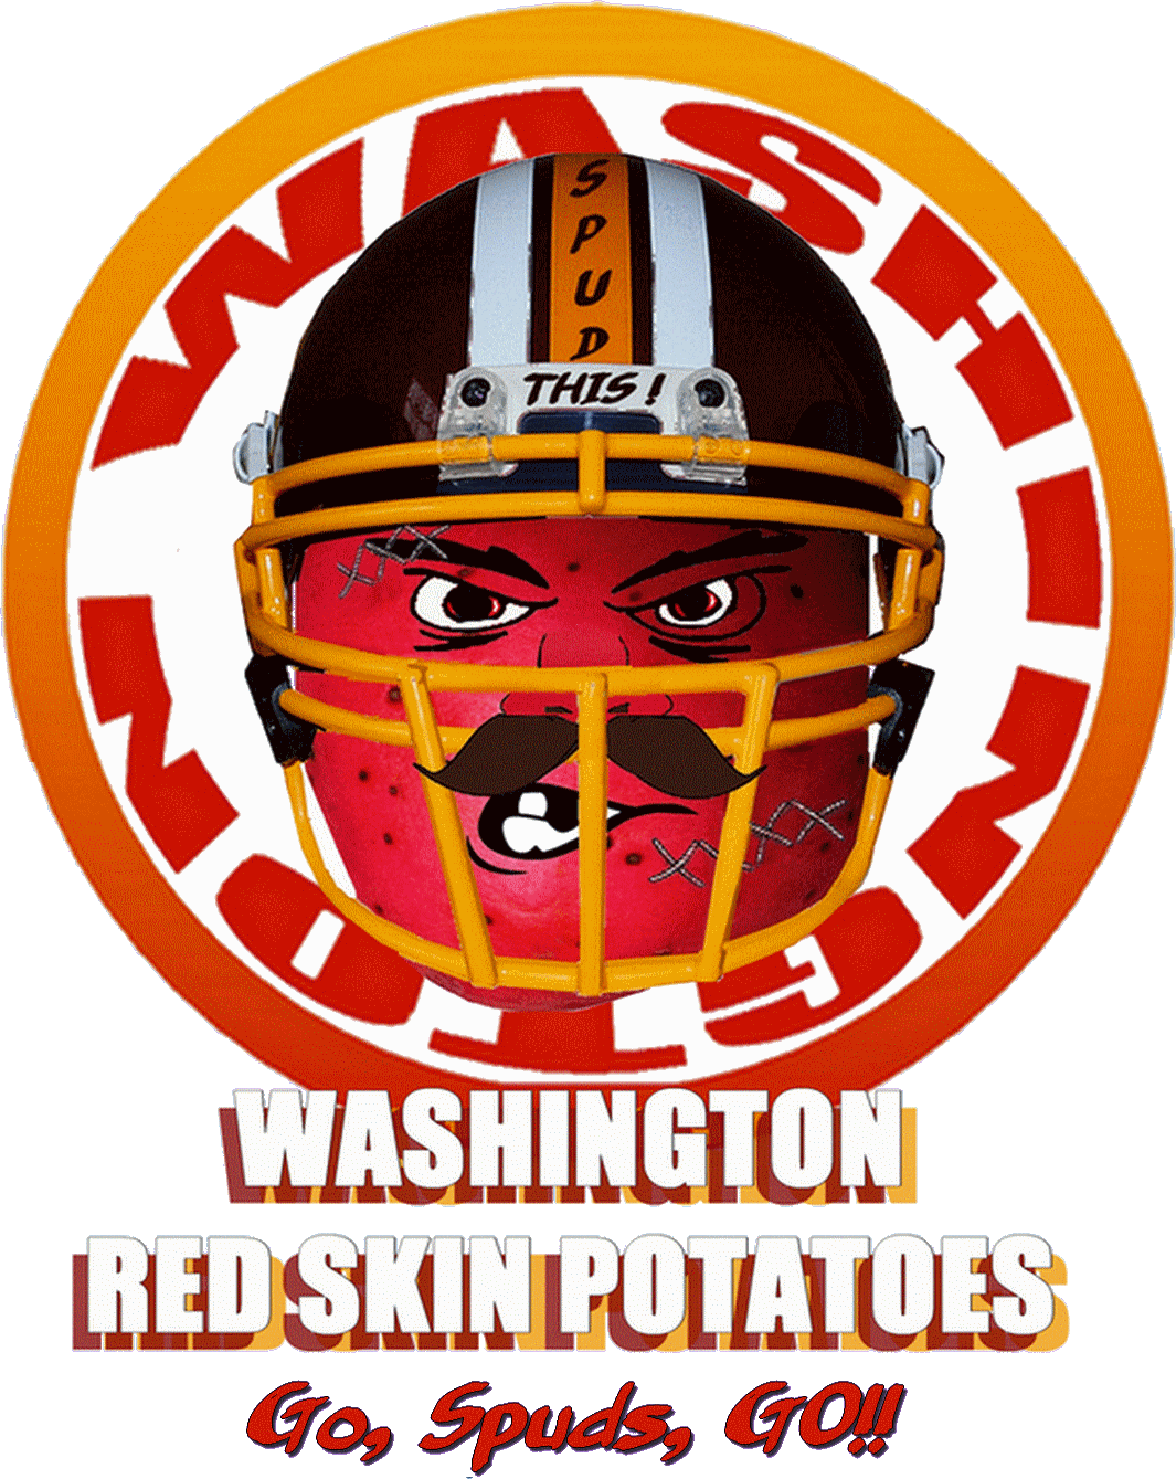 01012014 This is another of the proposed Washington Red